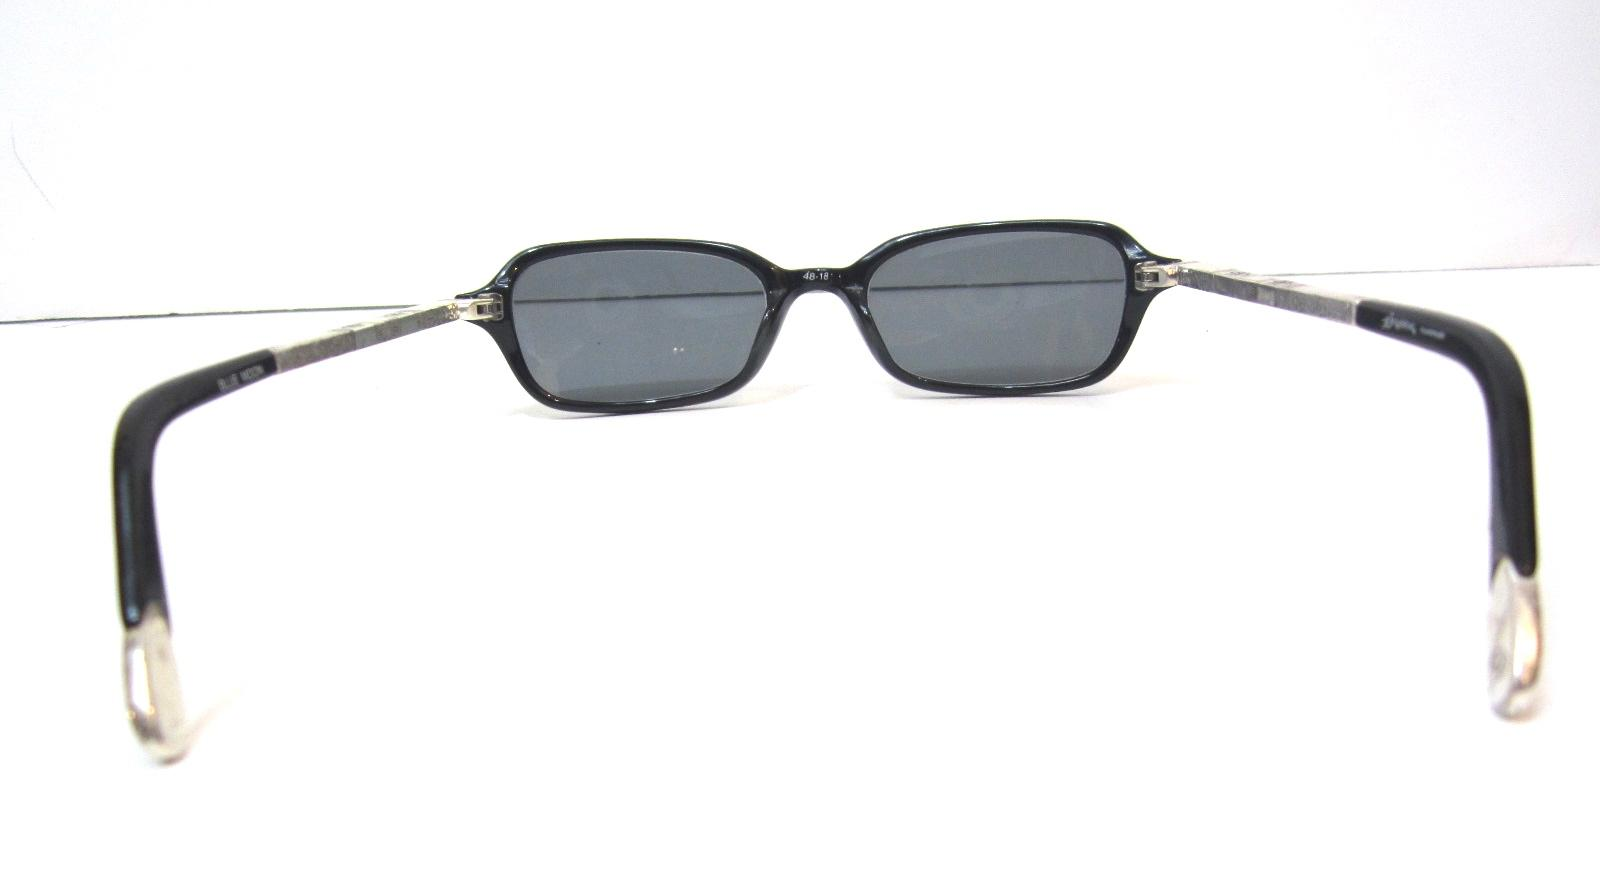 brighton handmade sunglasses brighton handmade black and silver sunglasses engraved 5664